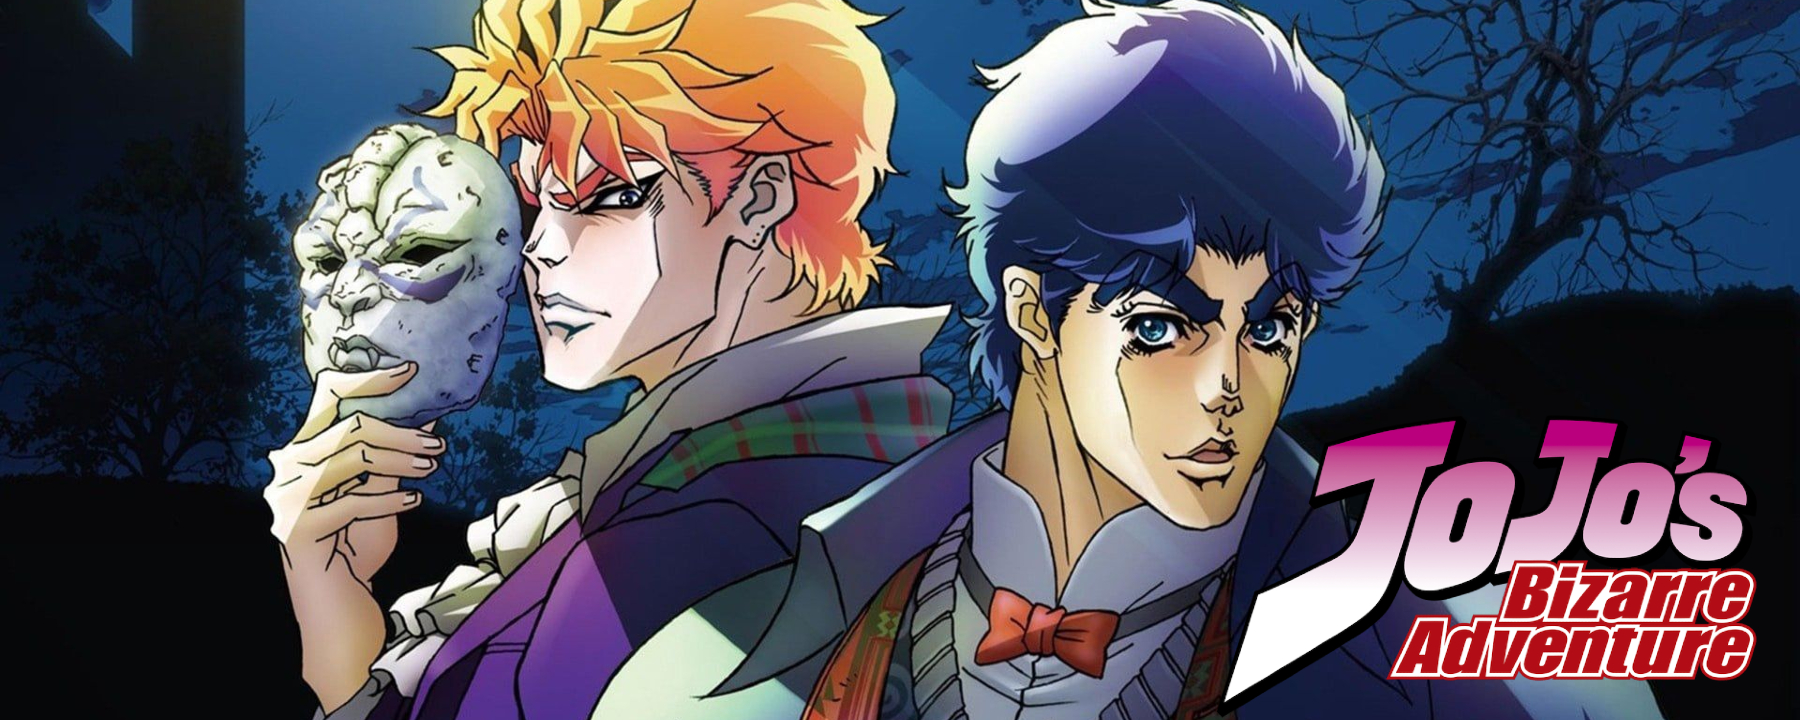 Anime Hajime Impressions: JoJo's Bizarre Adventure – Phantom Blood / Battle Tendency